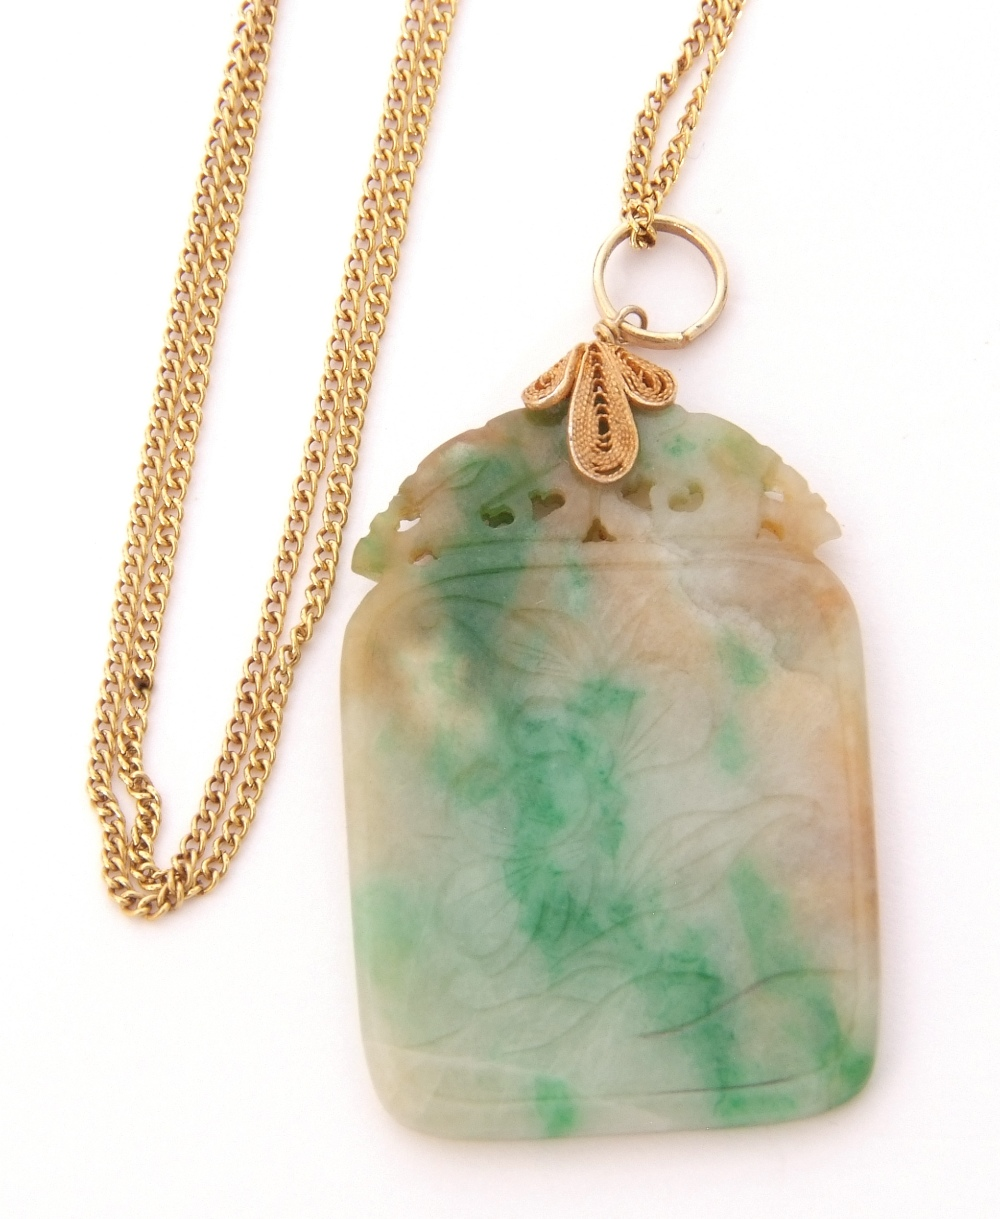 Modern jade pendant, 3 x 2cm, on a silver gilt bale, suspended from a 14K marked chain - Image 3 of 3